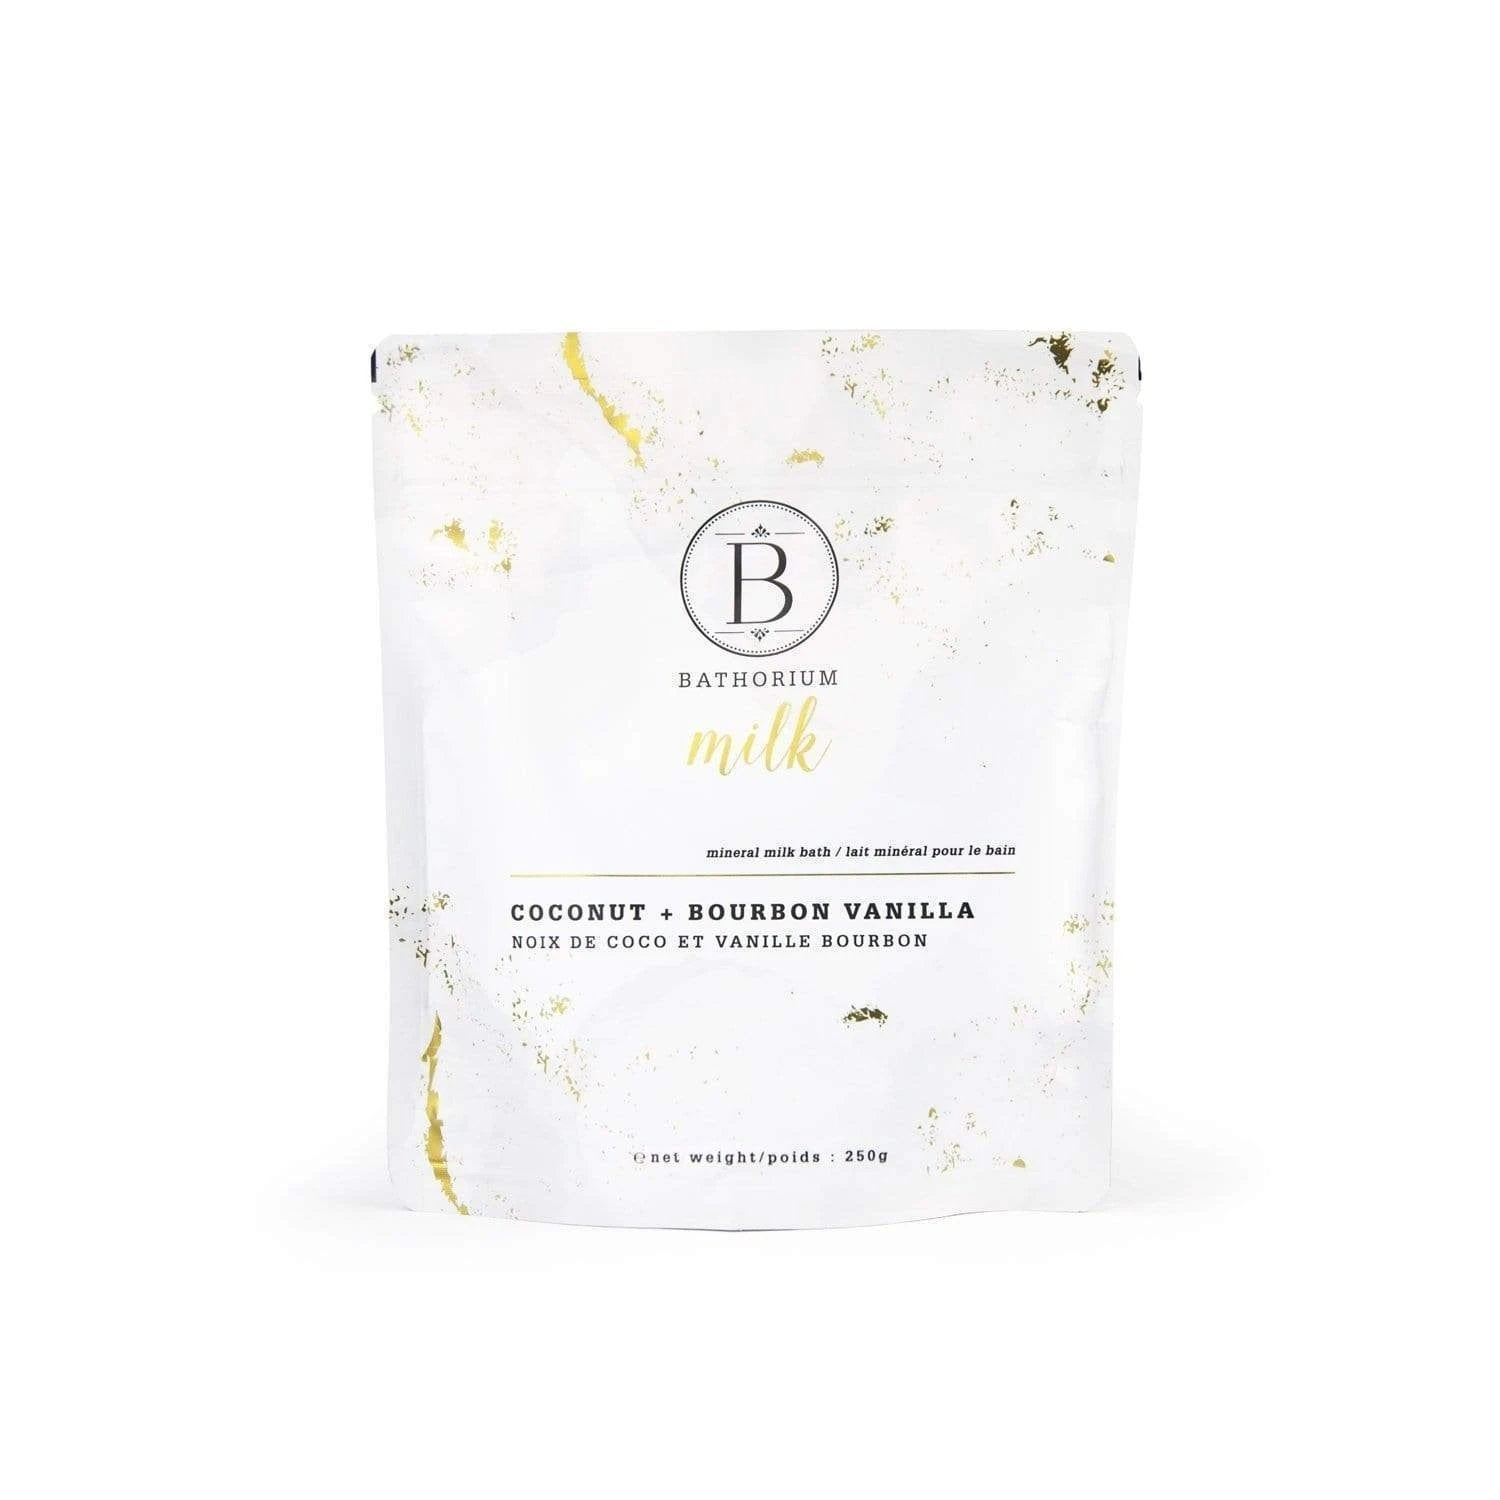 Coconut & Bourbon Vanilla Mineral Milk Bath by Bathorium